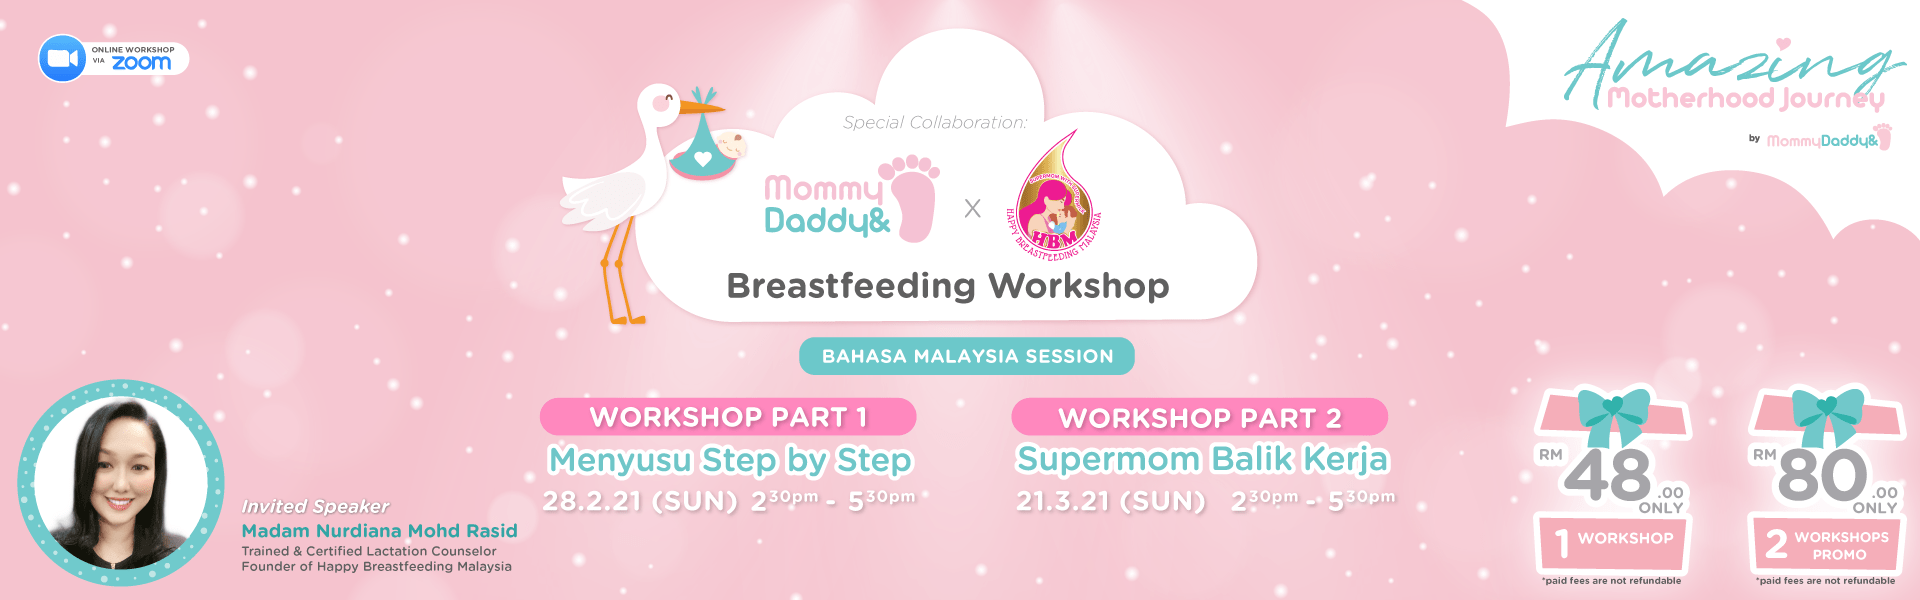 Breastfeeding Workshop Malaysia